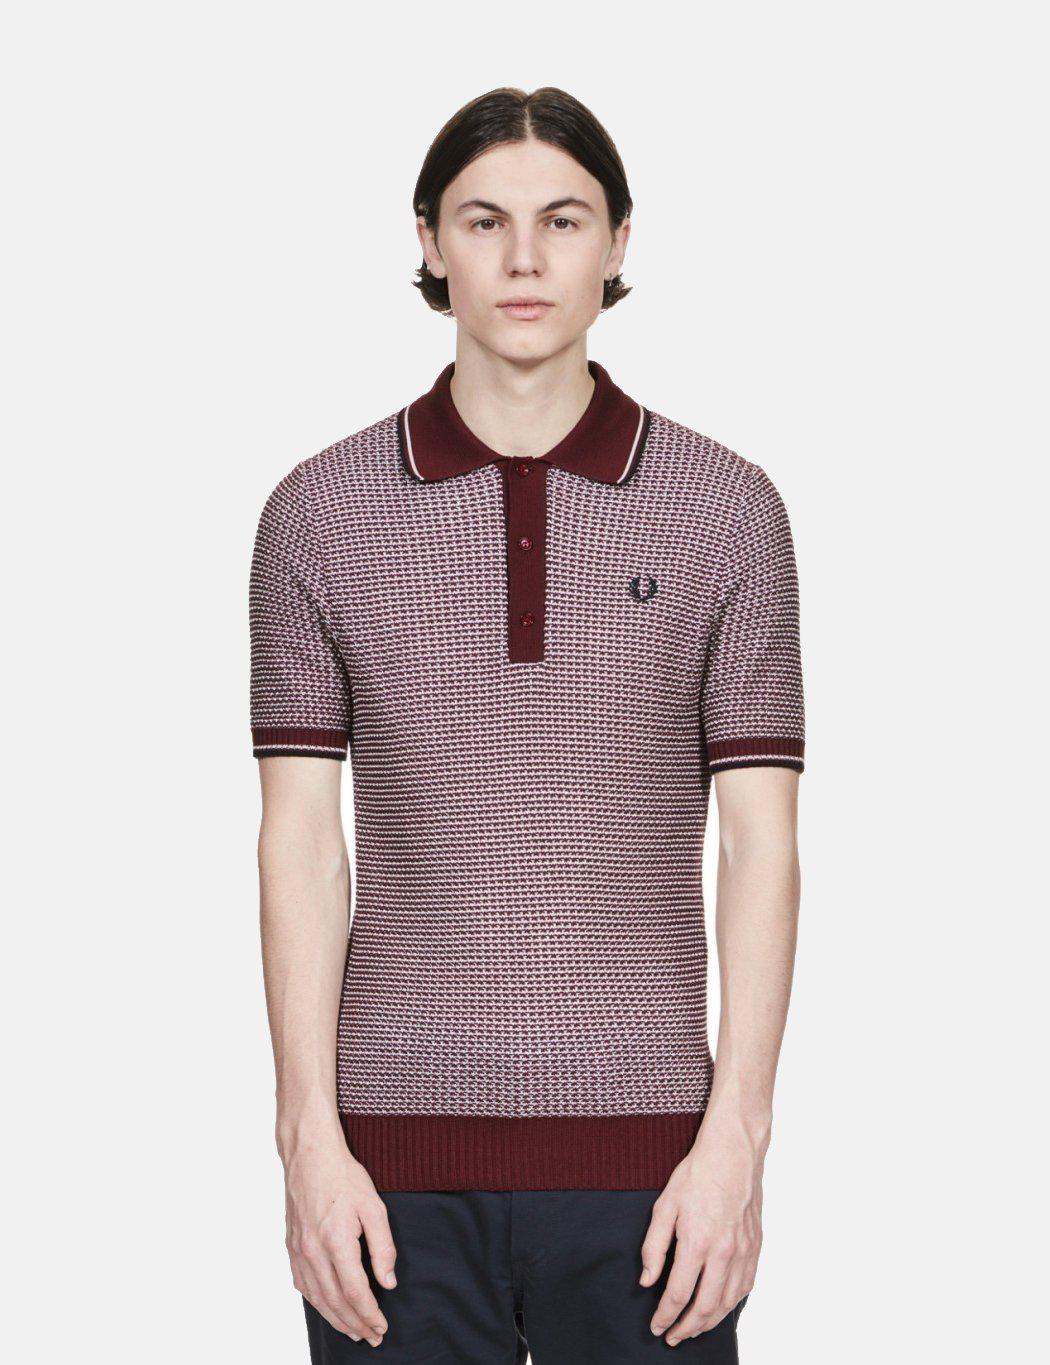 6da23cf0 Lyst - Fred Perry Re-issues Two Colour Texture Knit Polo Shirt in ...